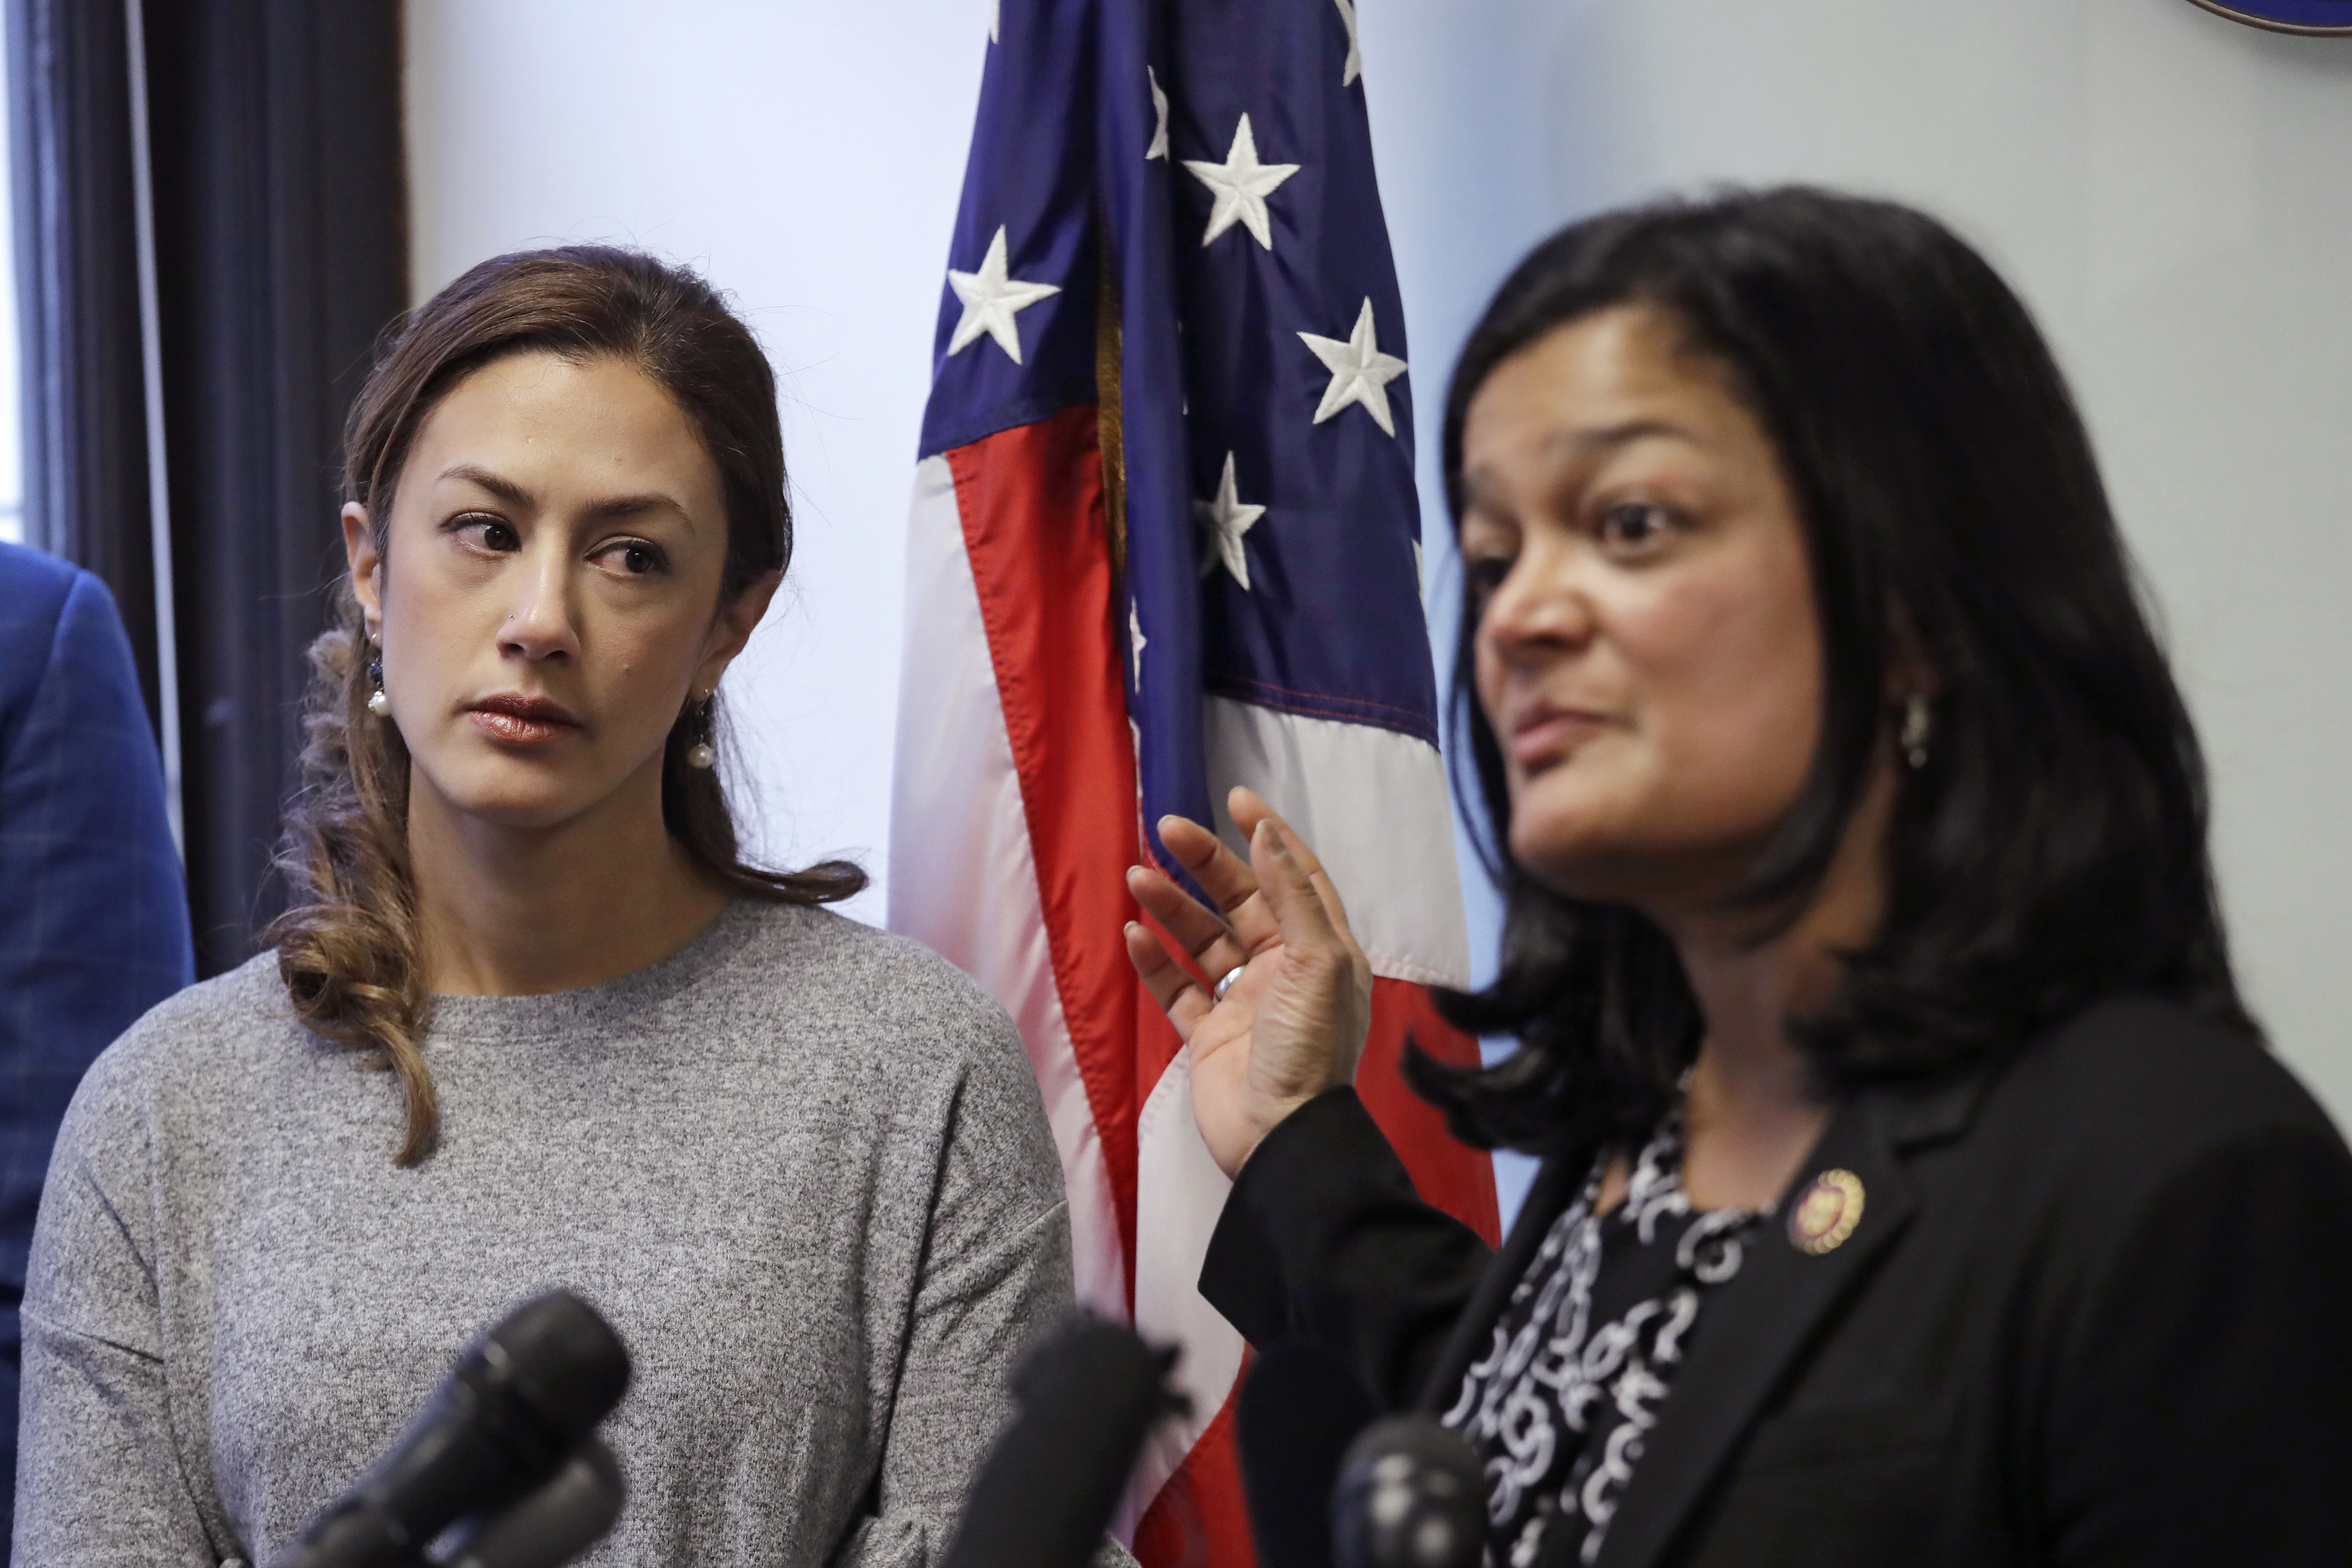 Negah Hekmati, left, looks on as Rep. Pramila Jayapal, D-Wash., addresses a news conference about Hekmati's ordeal during an hours-long delay returning to the U.S. from Canada with her family days earlier, Monday, Jan. 6, 2020, in Seattle.